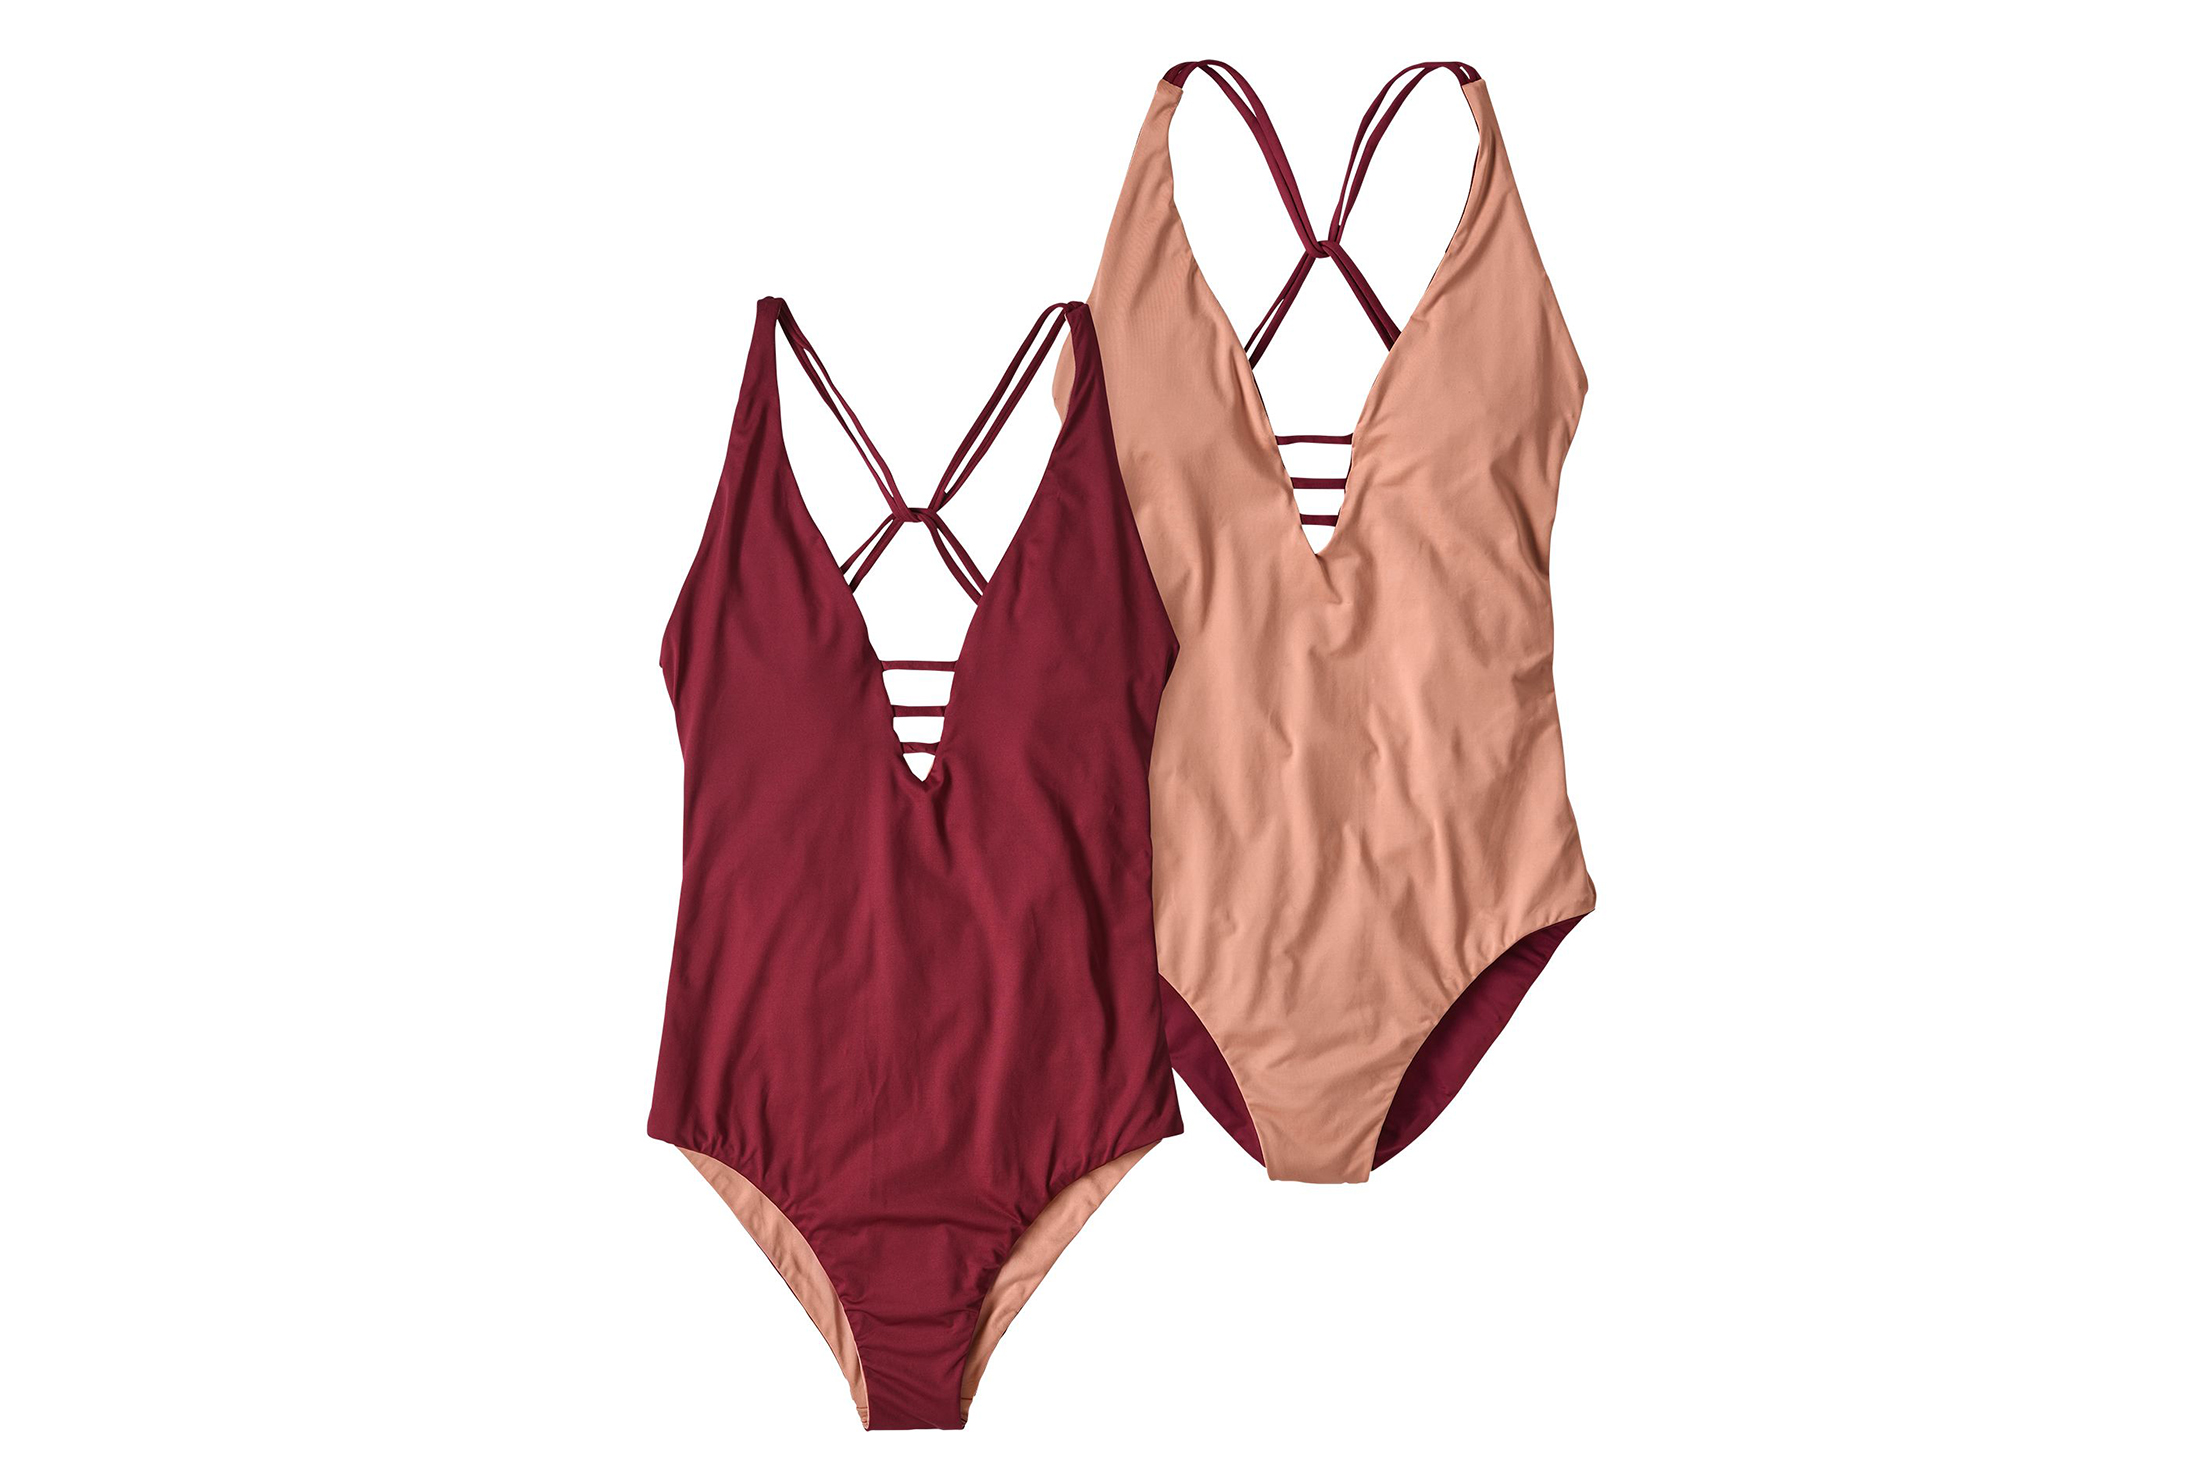 Patagonia-one-piece-swimsuit